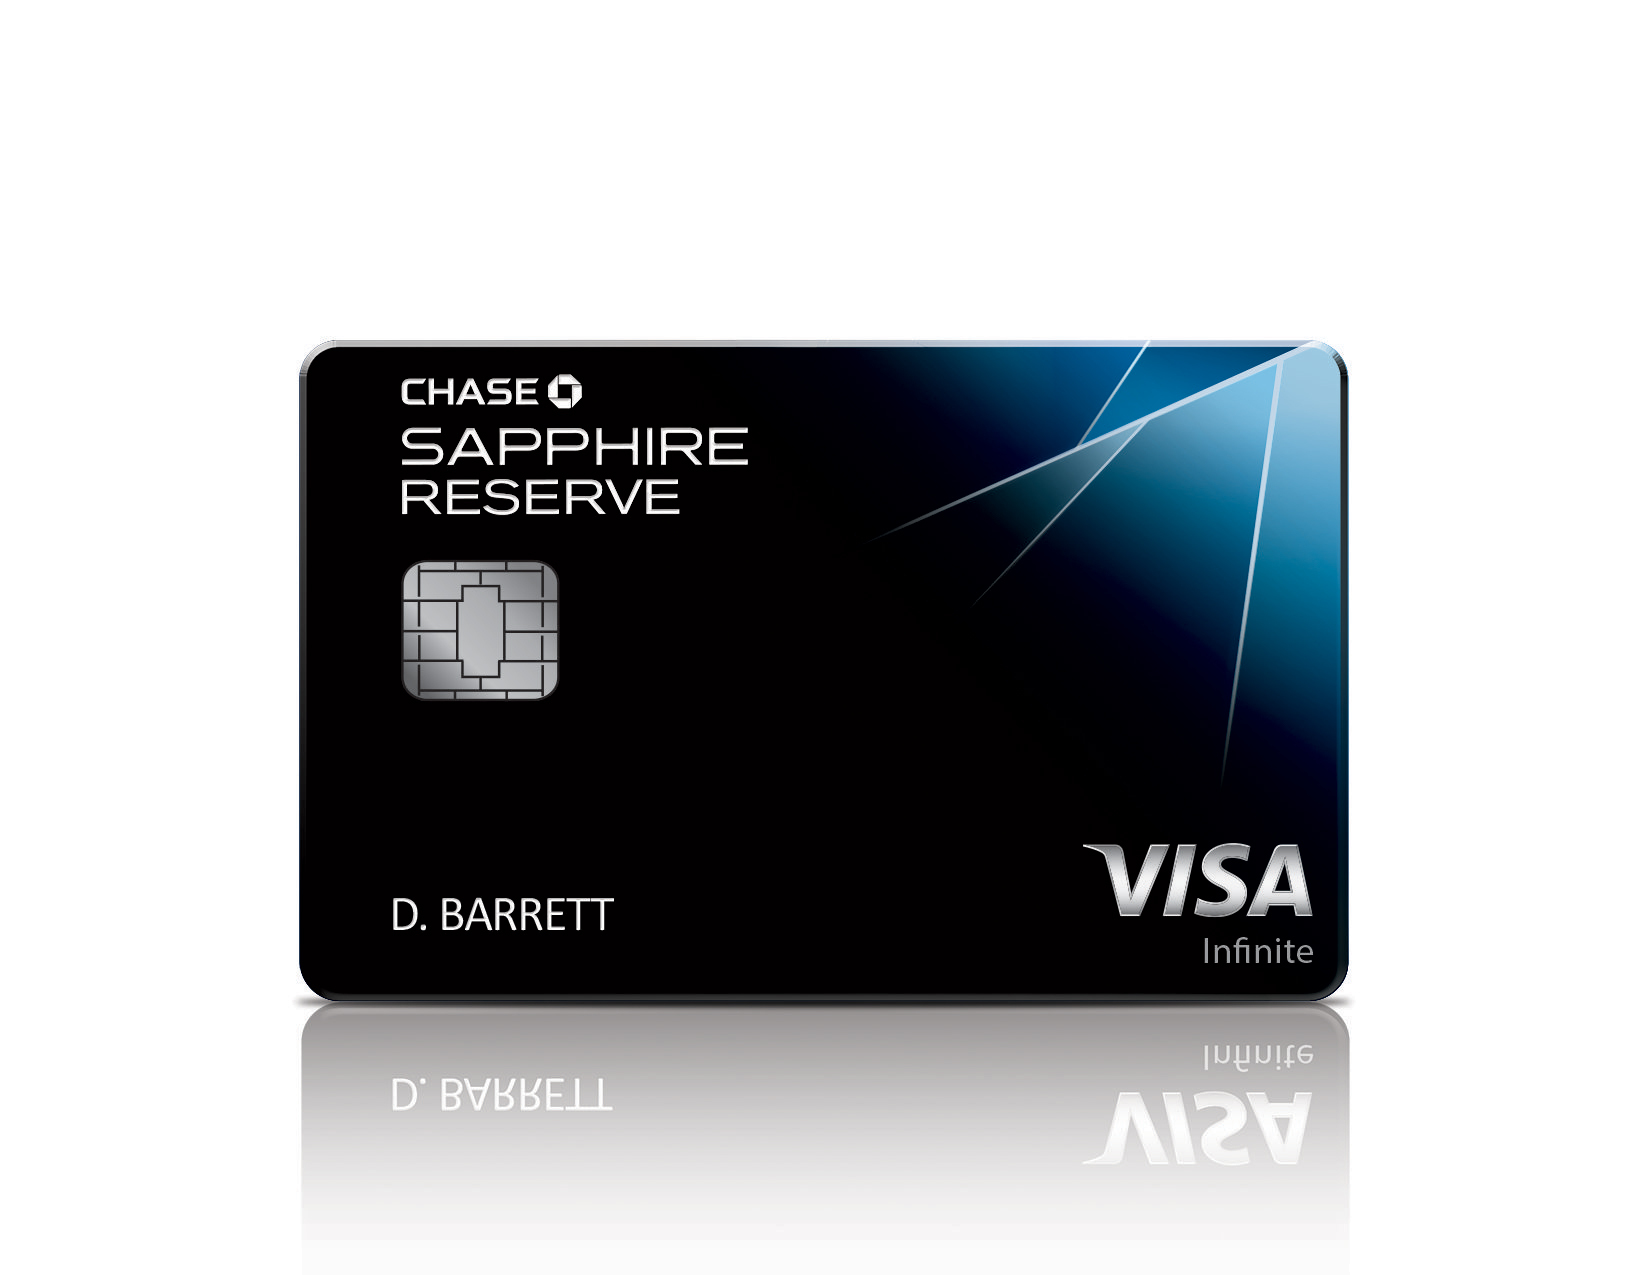 chase reinvents luxury credit card category with sapphire reserve